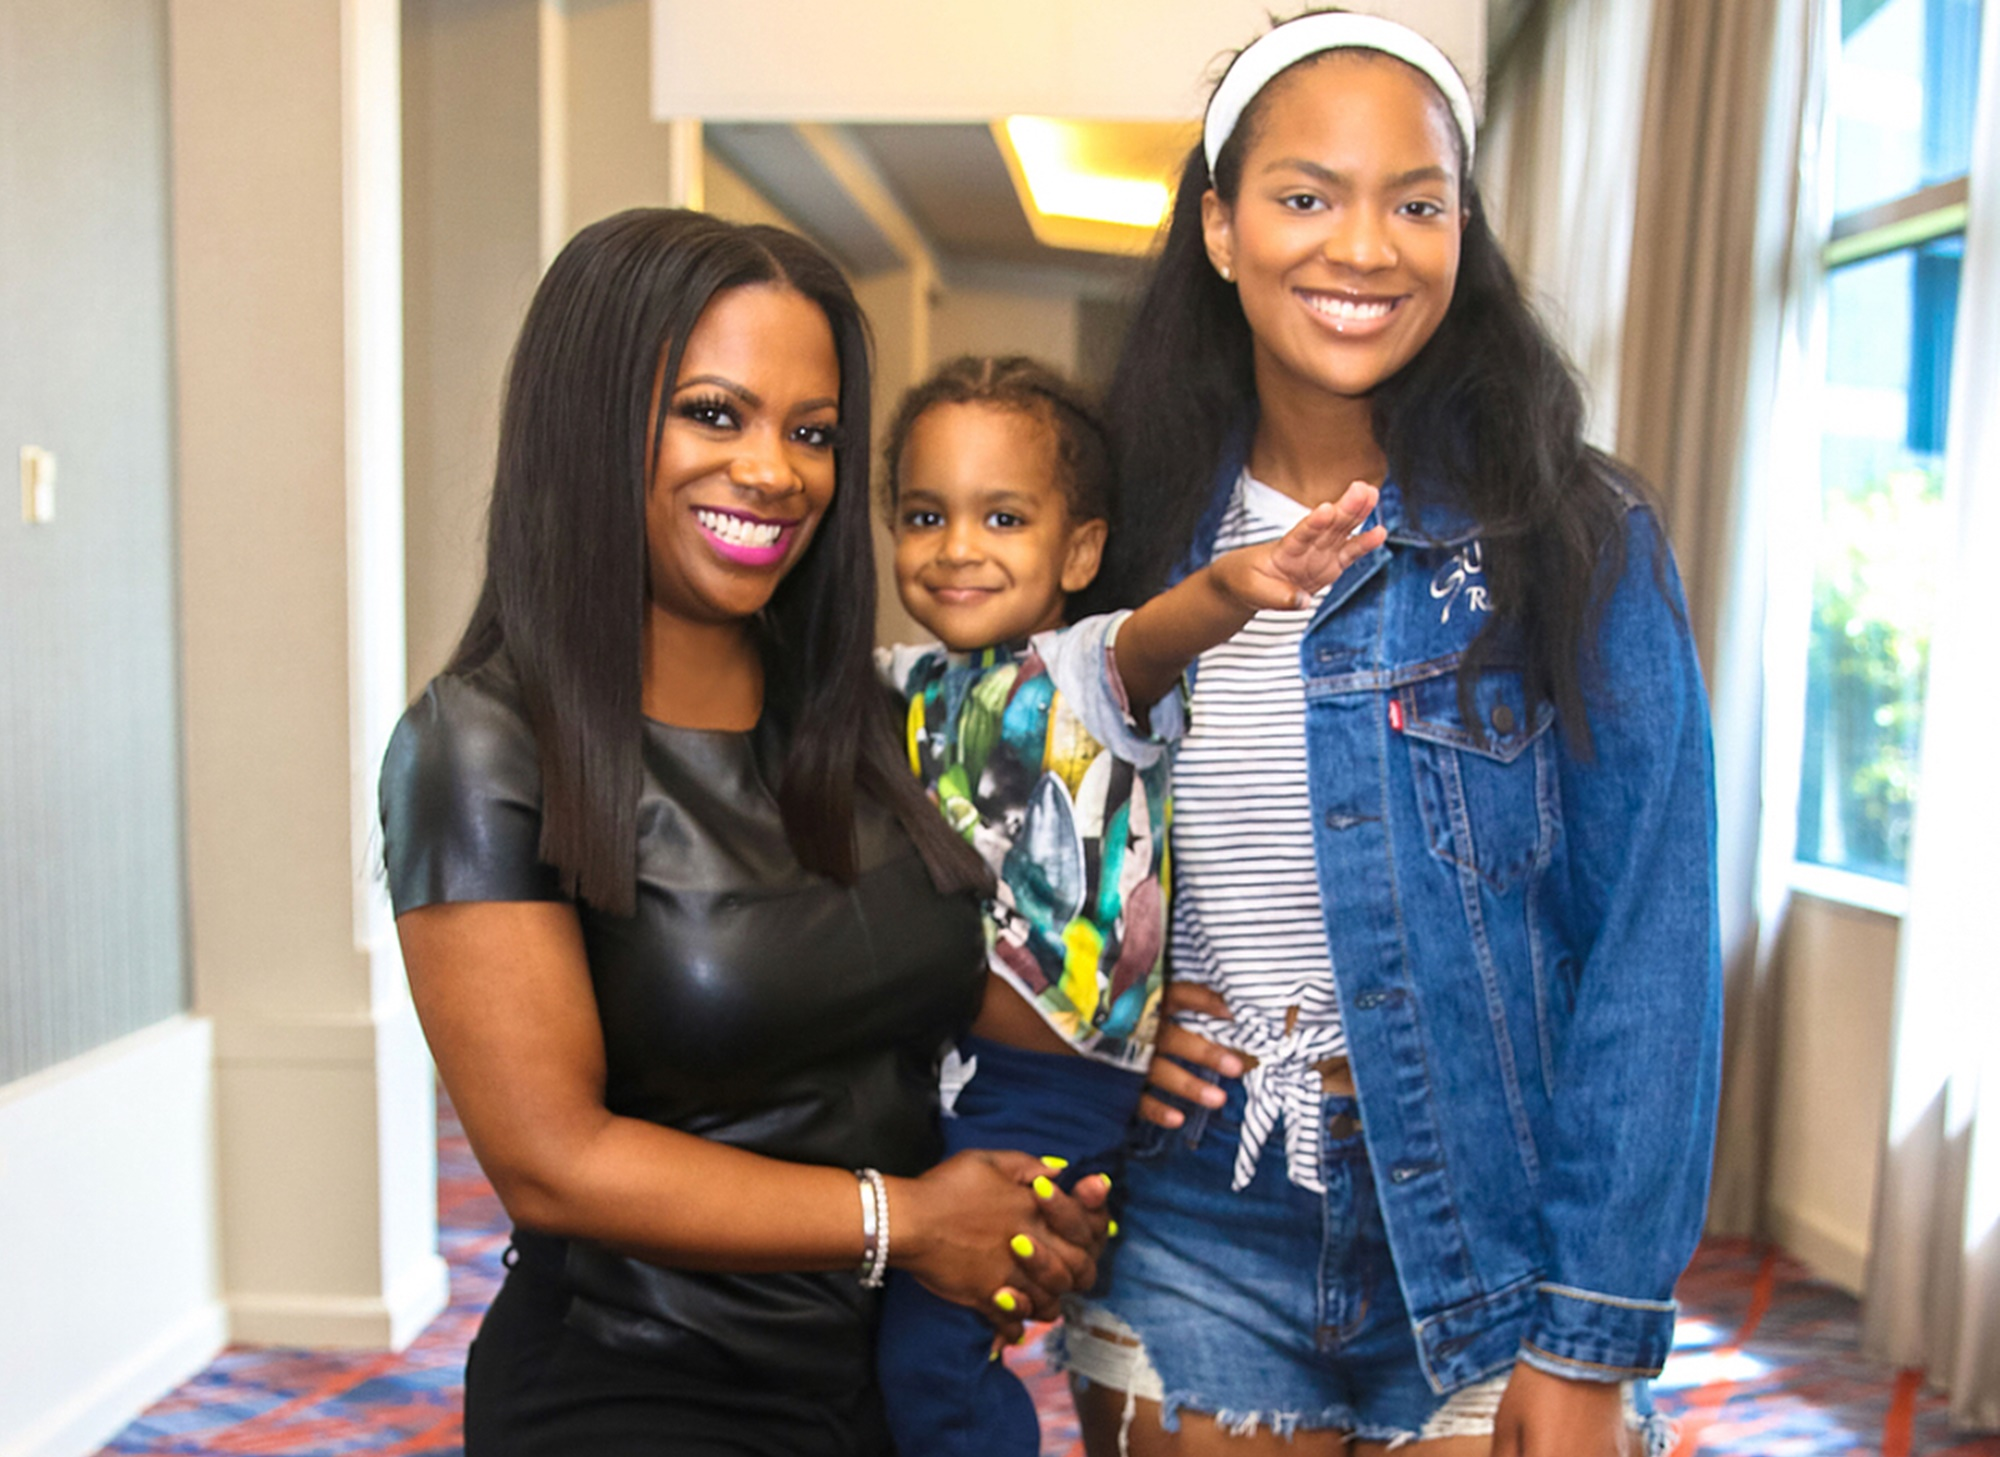 kandi-burruss-had-a-lot-of-fun-at-heiress-harris-third-birthday-party-see-her-pics-with-ace-wells-tucker-and-riley-burruss